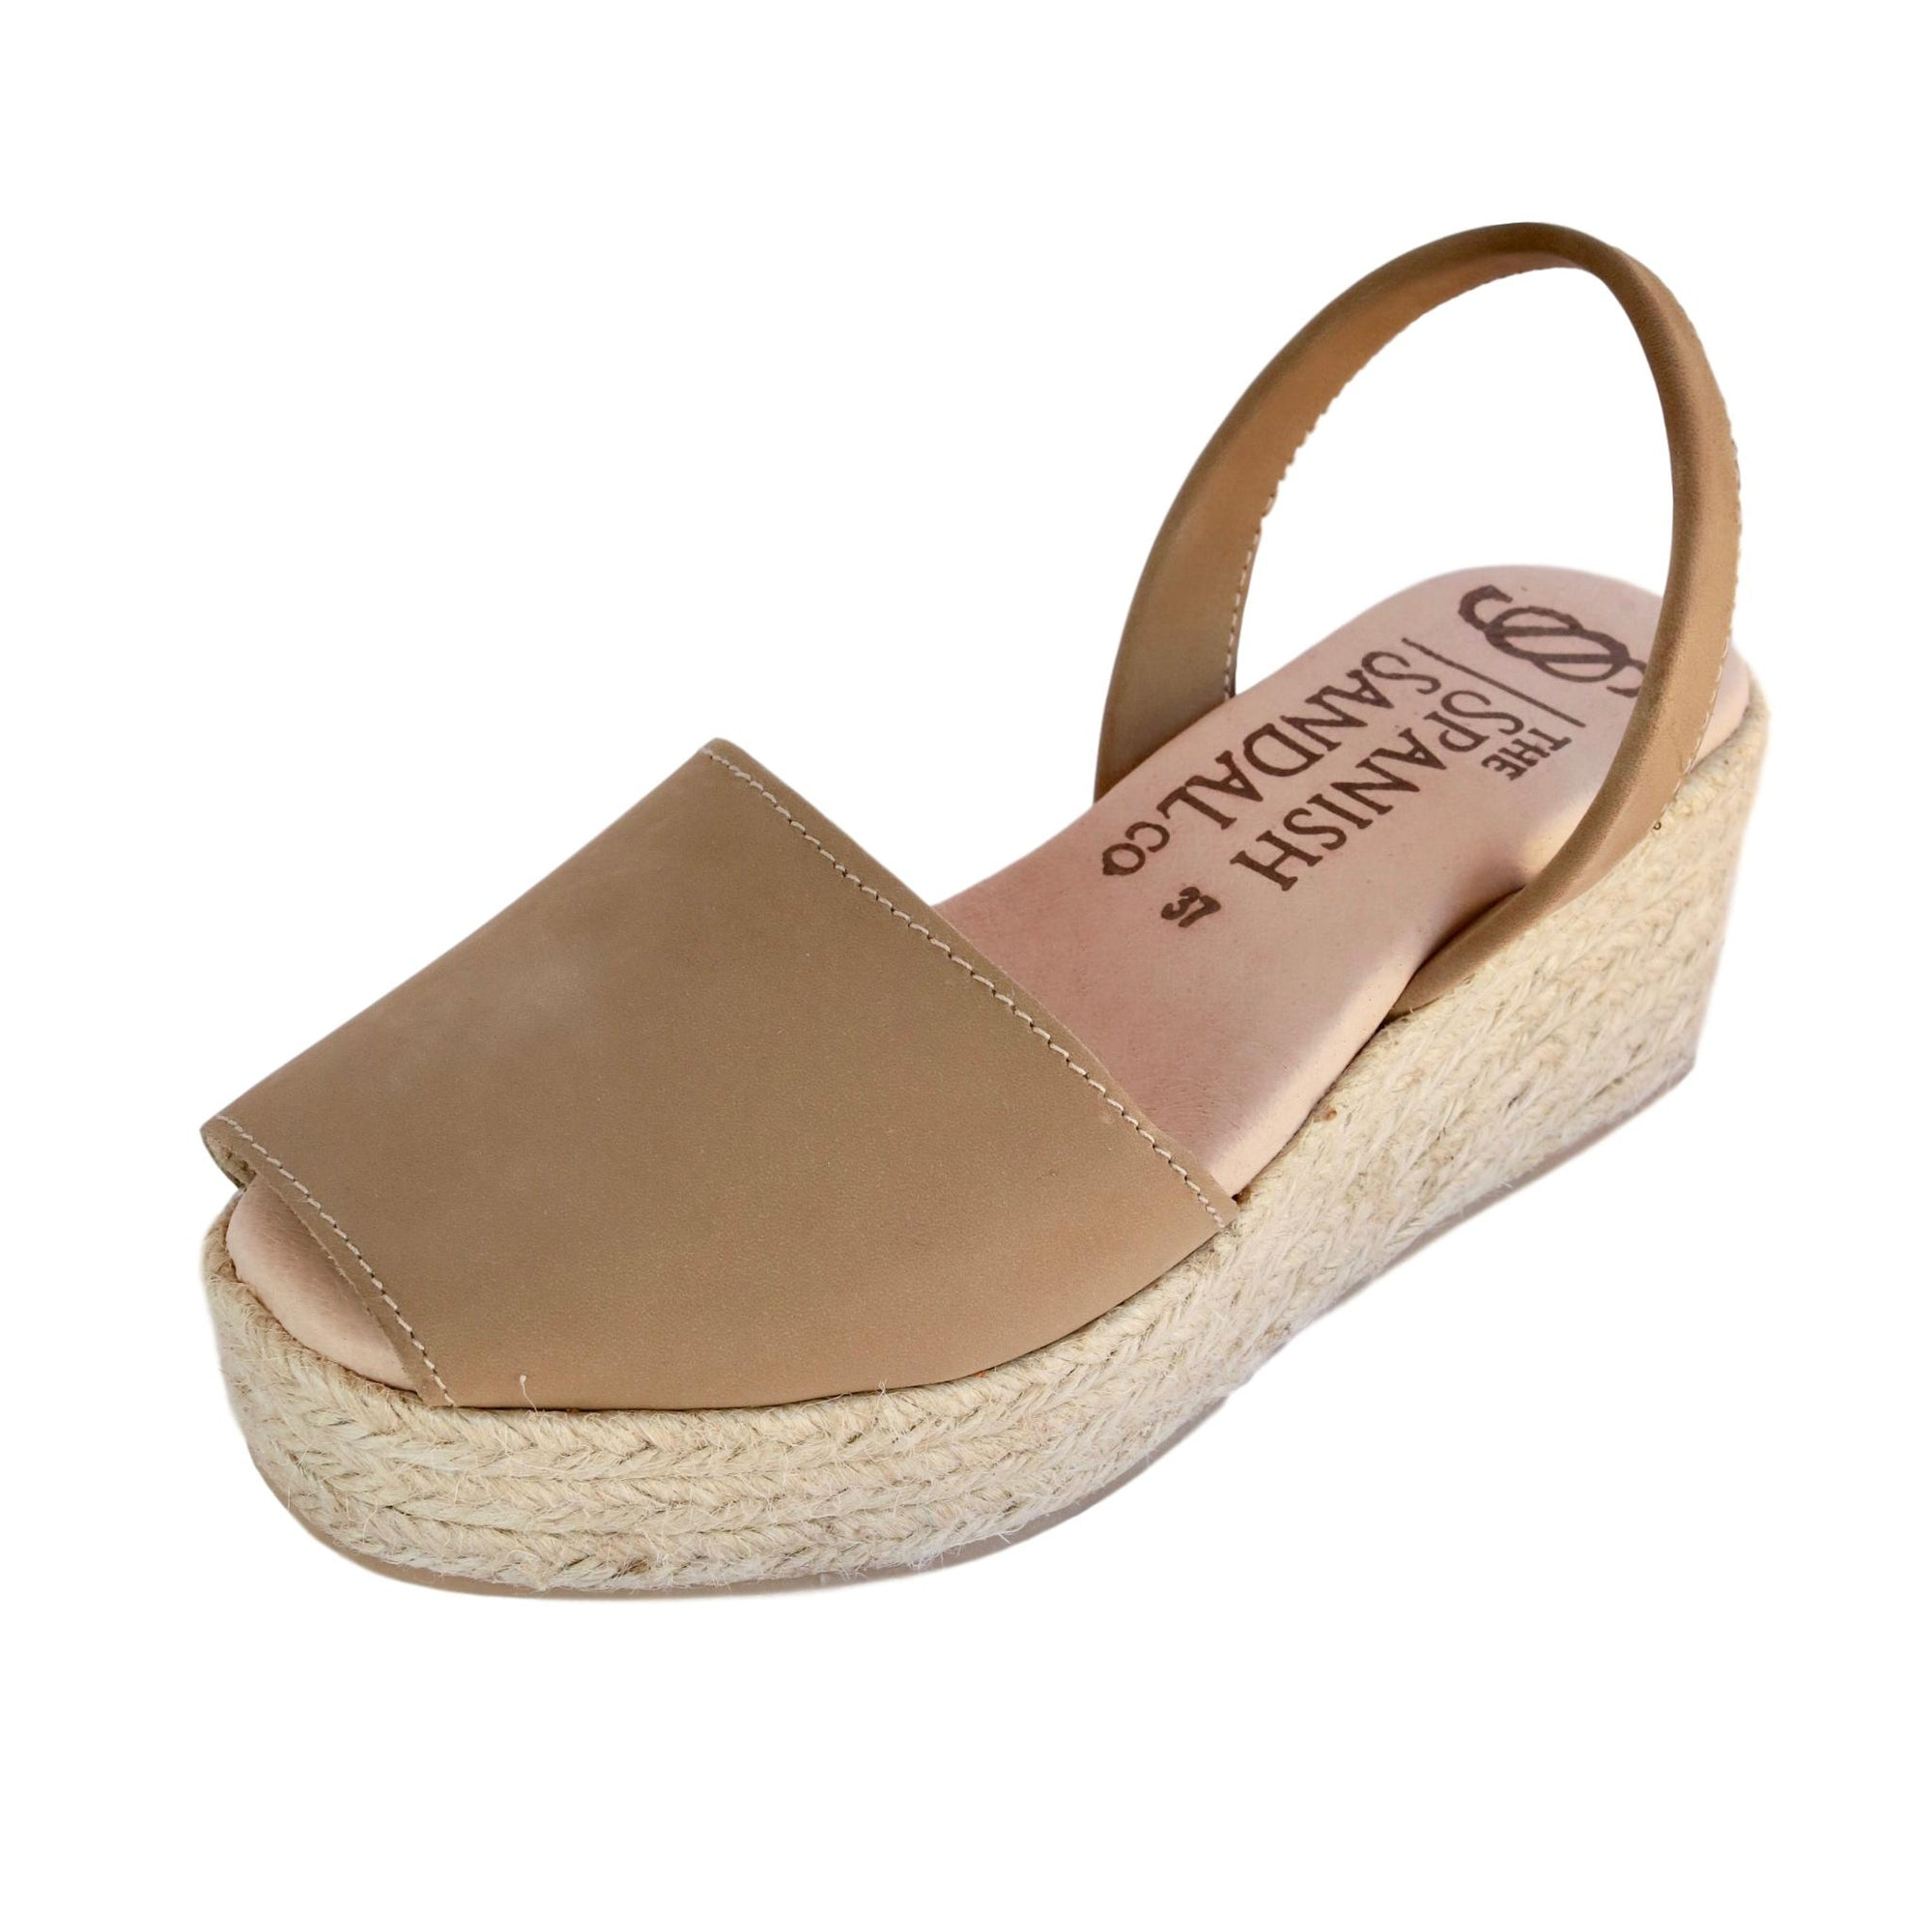 Toffee espadrille wedge sandals CLOUD